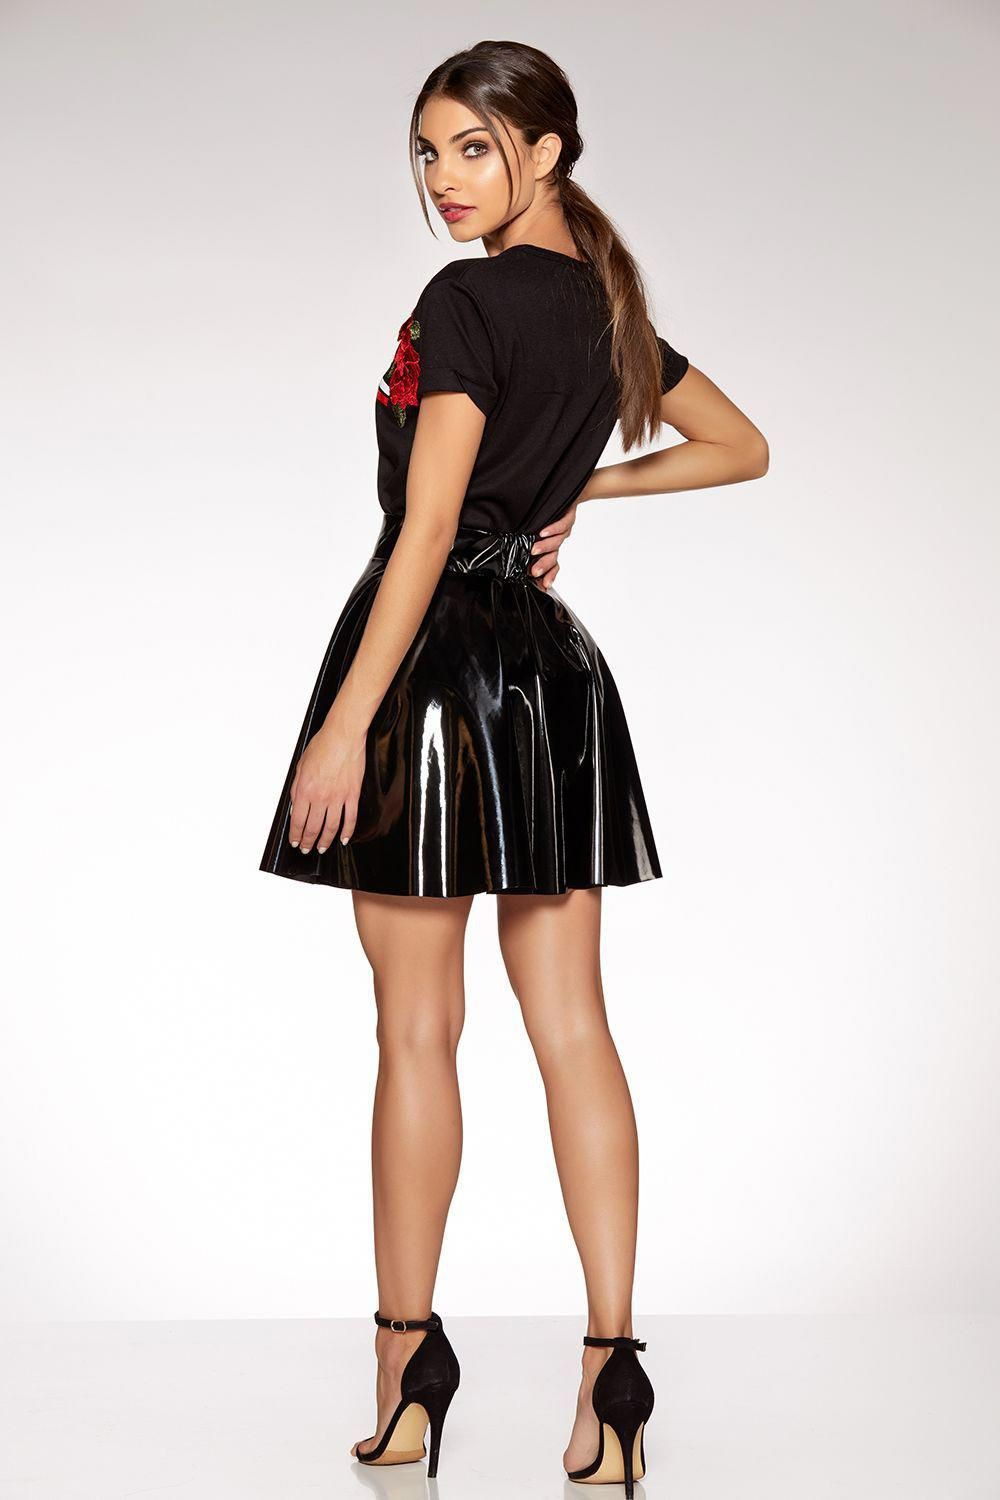 Metallic skater mini skirt discountdance